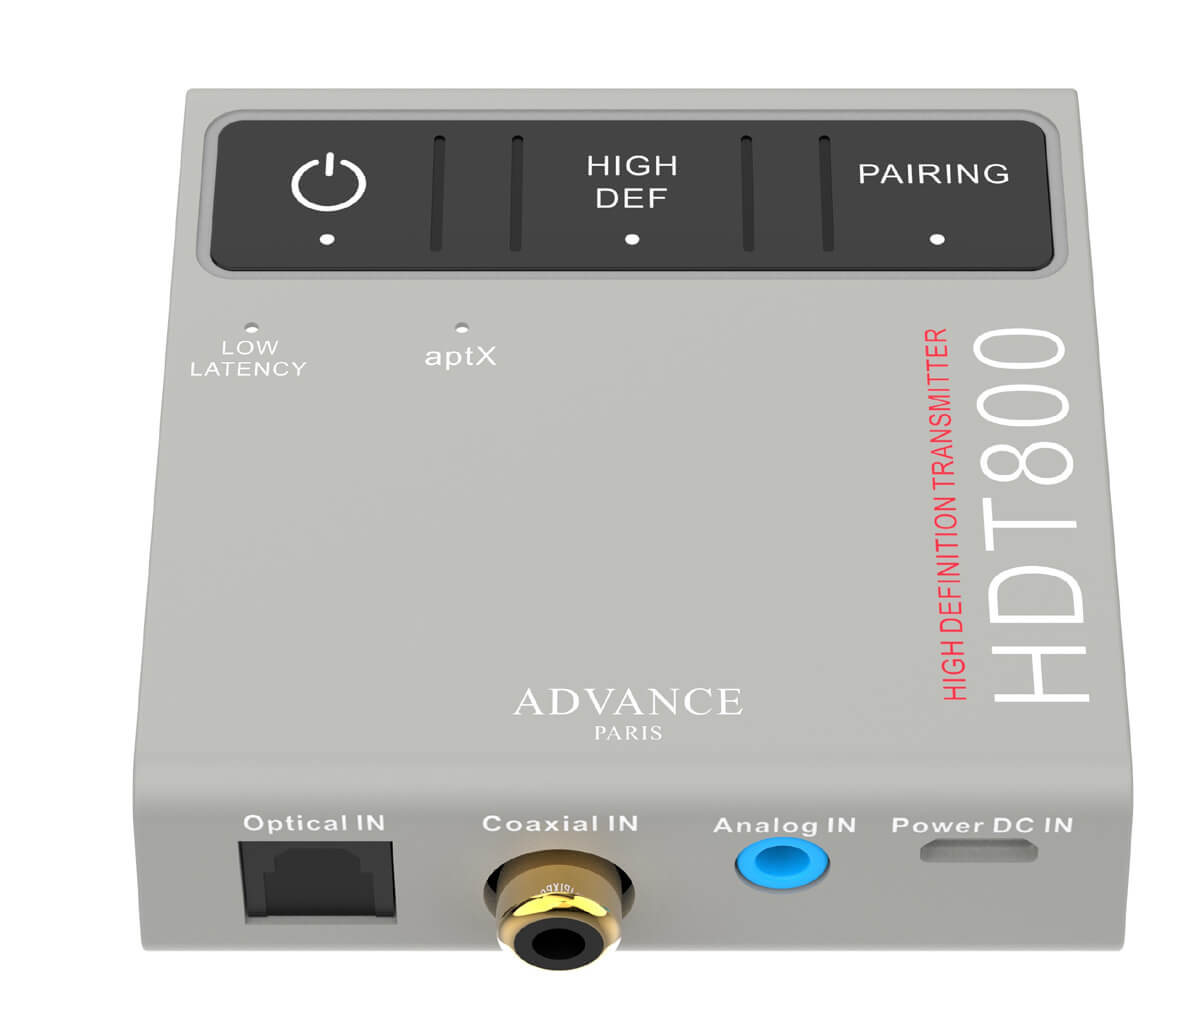 Advance Paris HDT800 Bluetooth-Transmitter/Sender in der Draufsicht